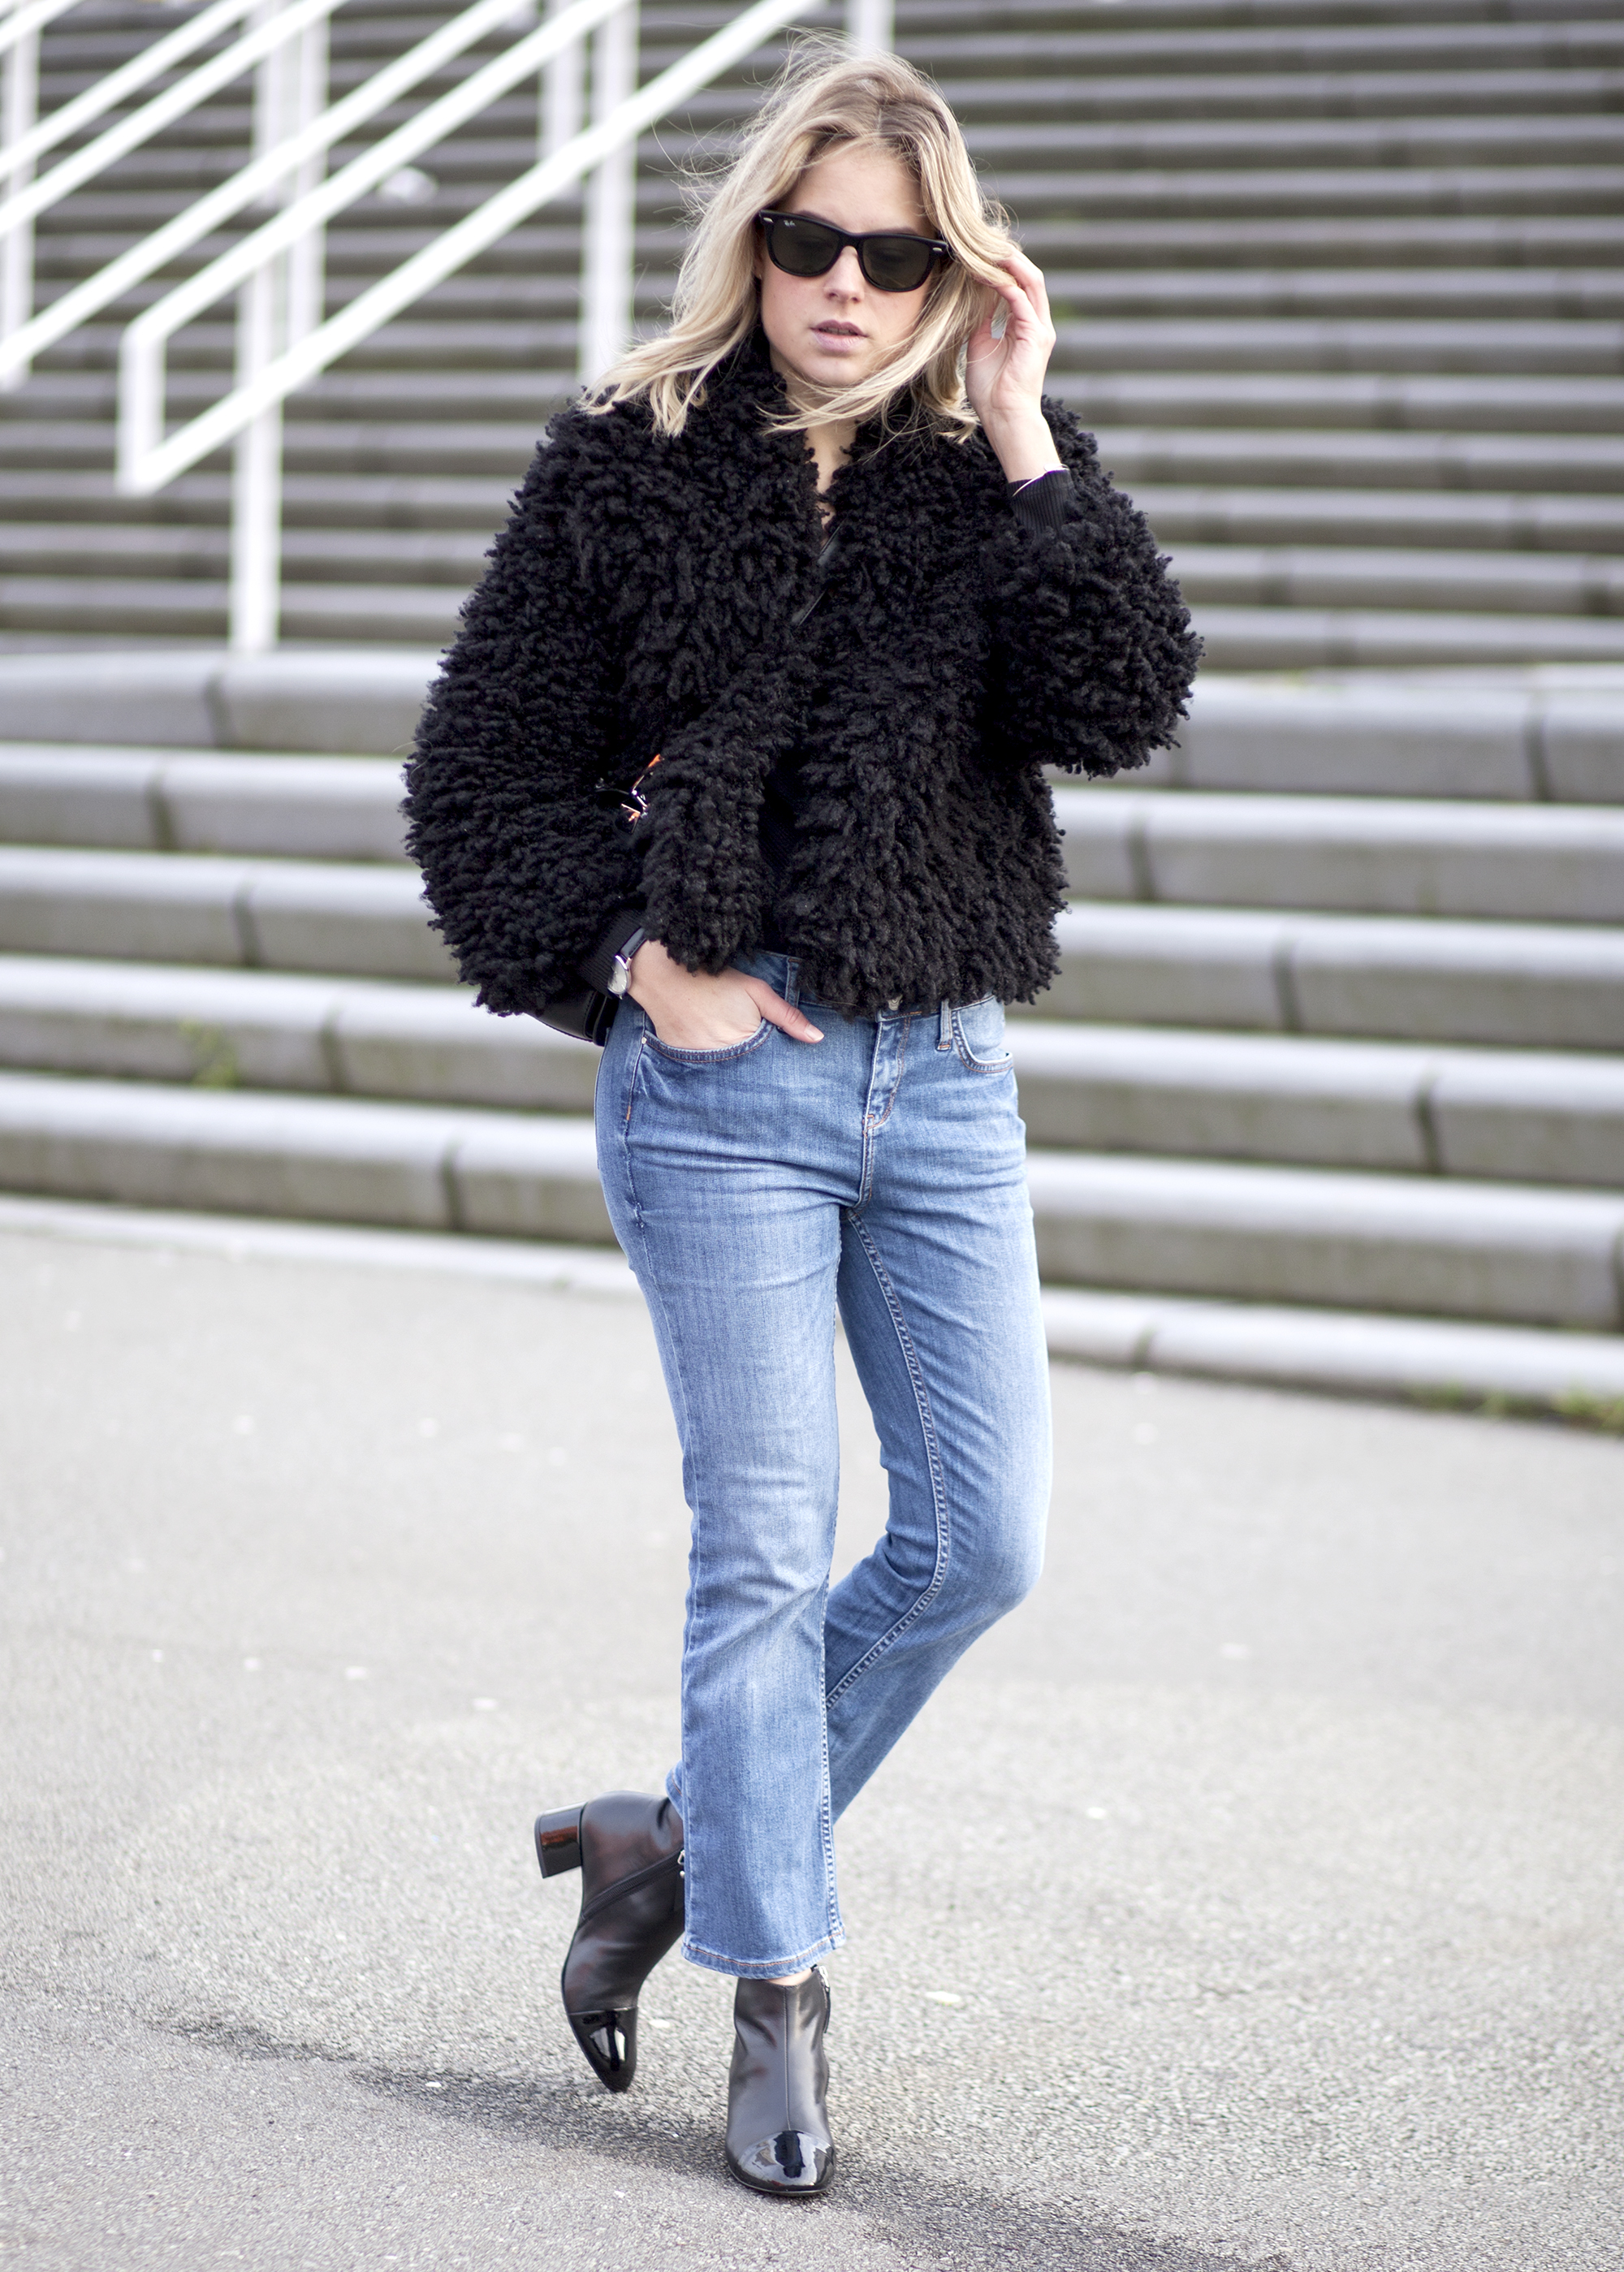 Rosanna van Billie-Rose has created a cute and quirky look by pairing a cropped fluffy jacket and wide legged denim jeans. A similar coat can also be worn with skirts and dresses and is thus versatile and worth a buy! Jacket: Zara, Jeans: River Island, Top: H&M, Boots: Alexander Wang.